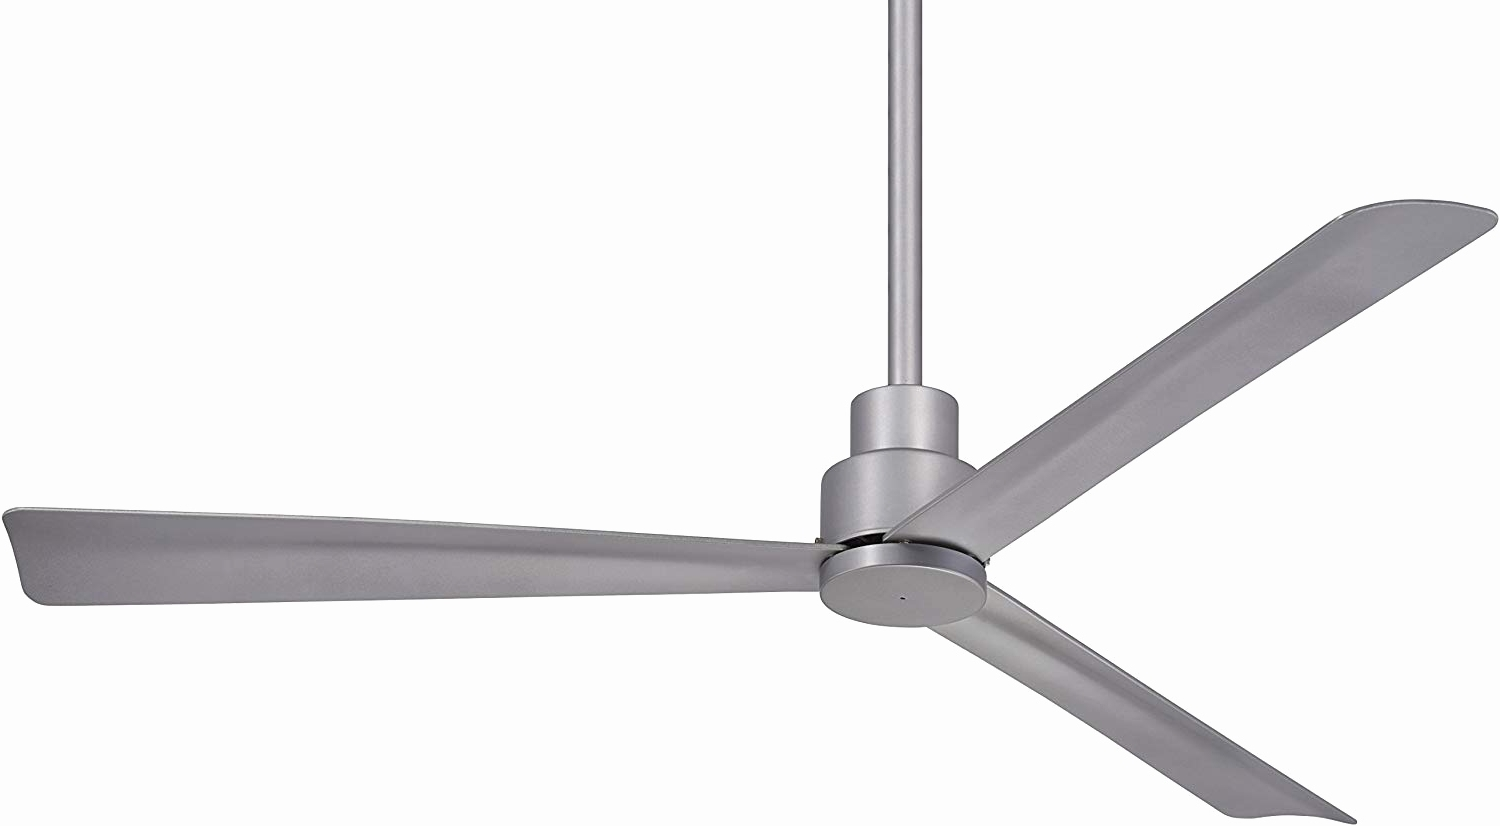 Amazon Outdoor Ceiling Fans With Lights Regarding 2019 25 Fresh Black Outdoor Ceiling Fans With Lights (View 6 of 20)